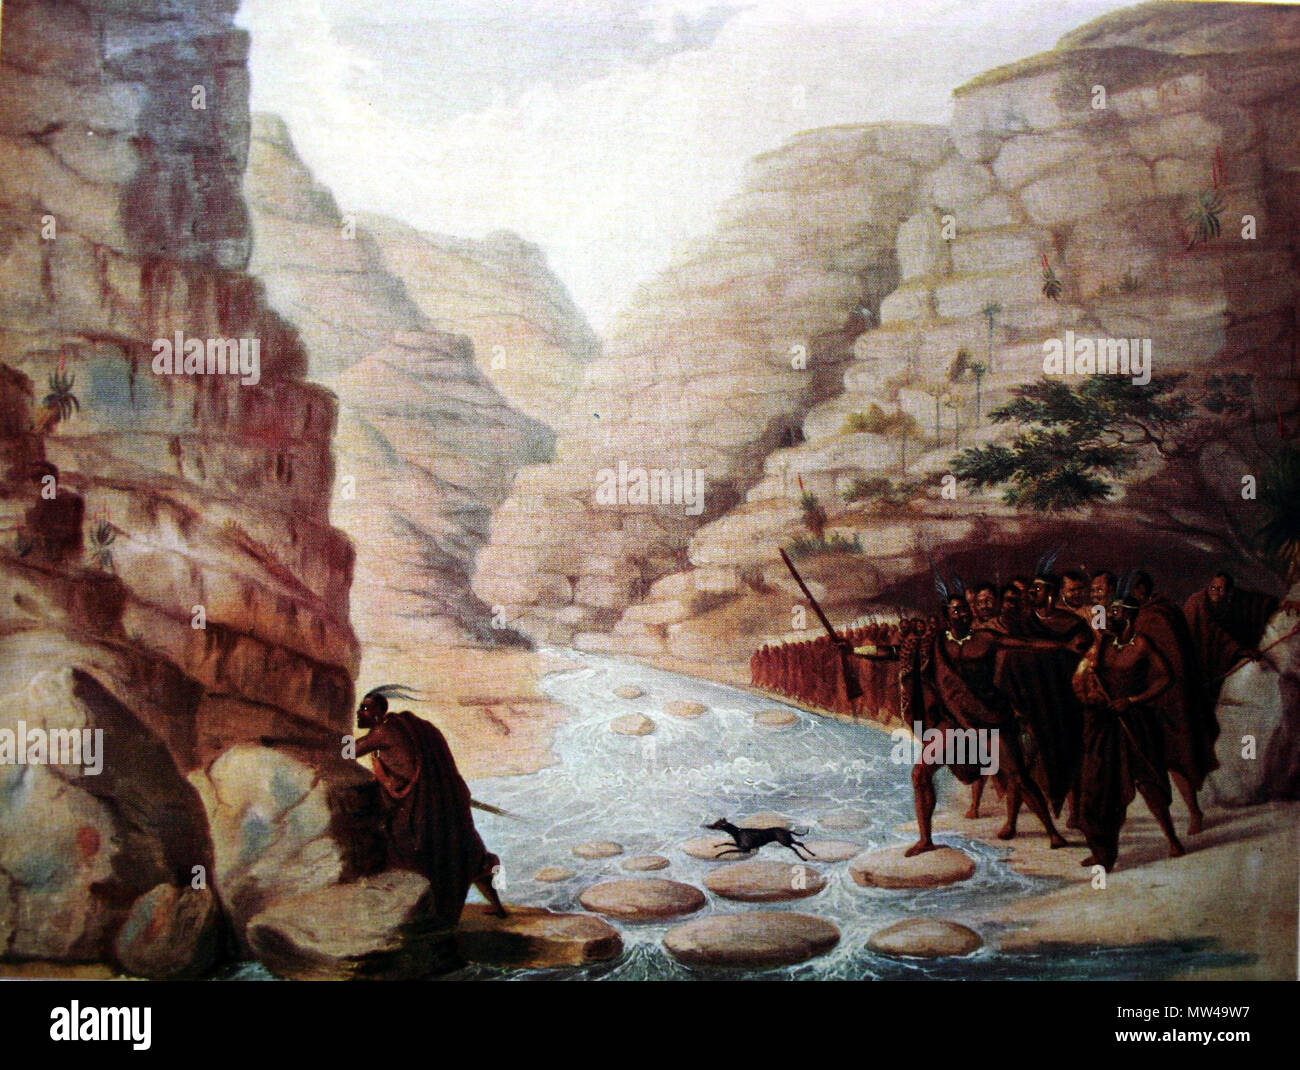 . English: 'Column of Xhosas crossing a River in a Deep Ravine', painting by Frederick Timpson I'Ons (1802-1887) . before 1887. J. J. Redgrave & Edna Bradlow 220 Frederick Timpson I'Ons08 - Stock Image